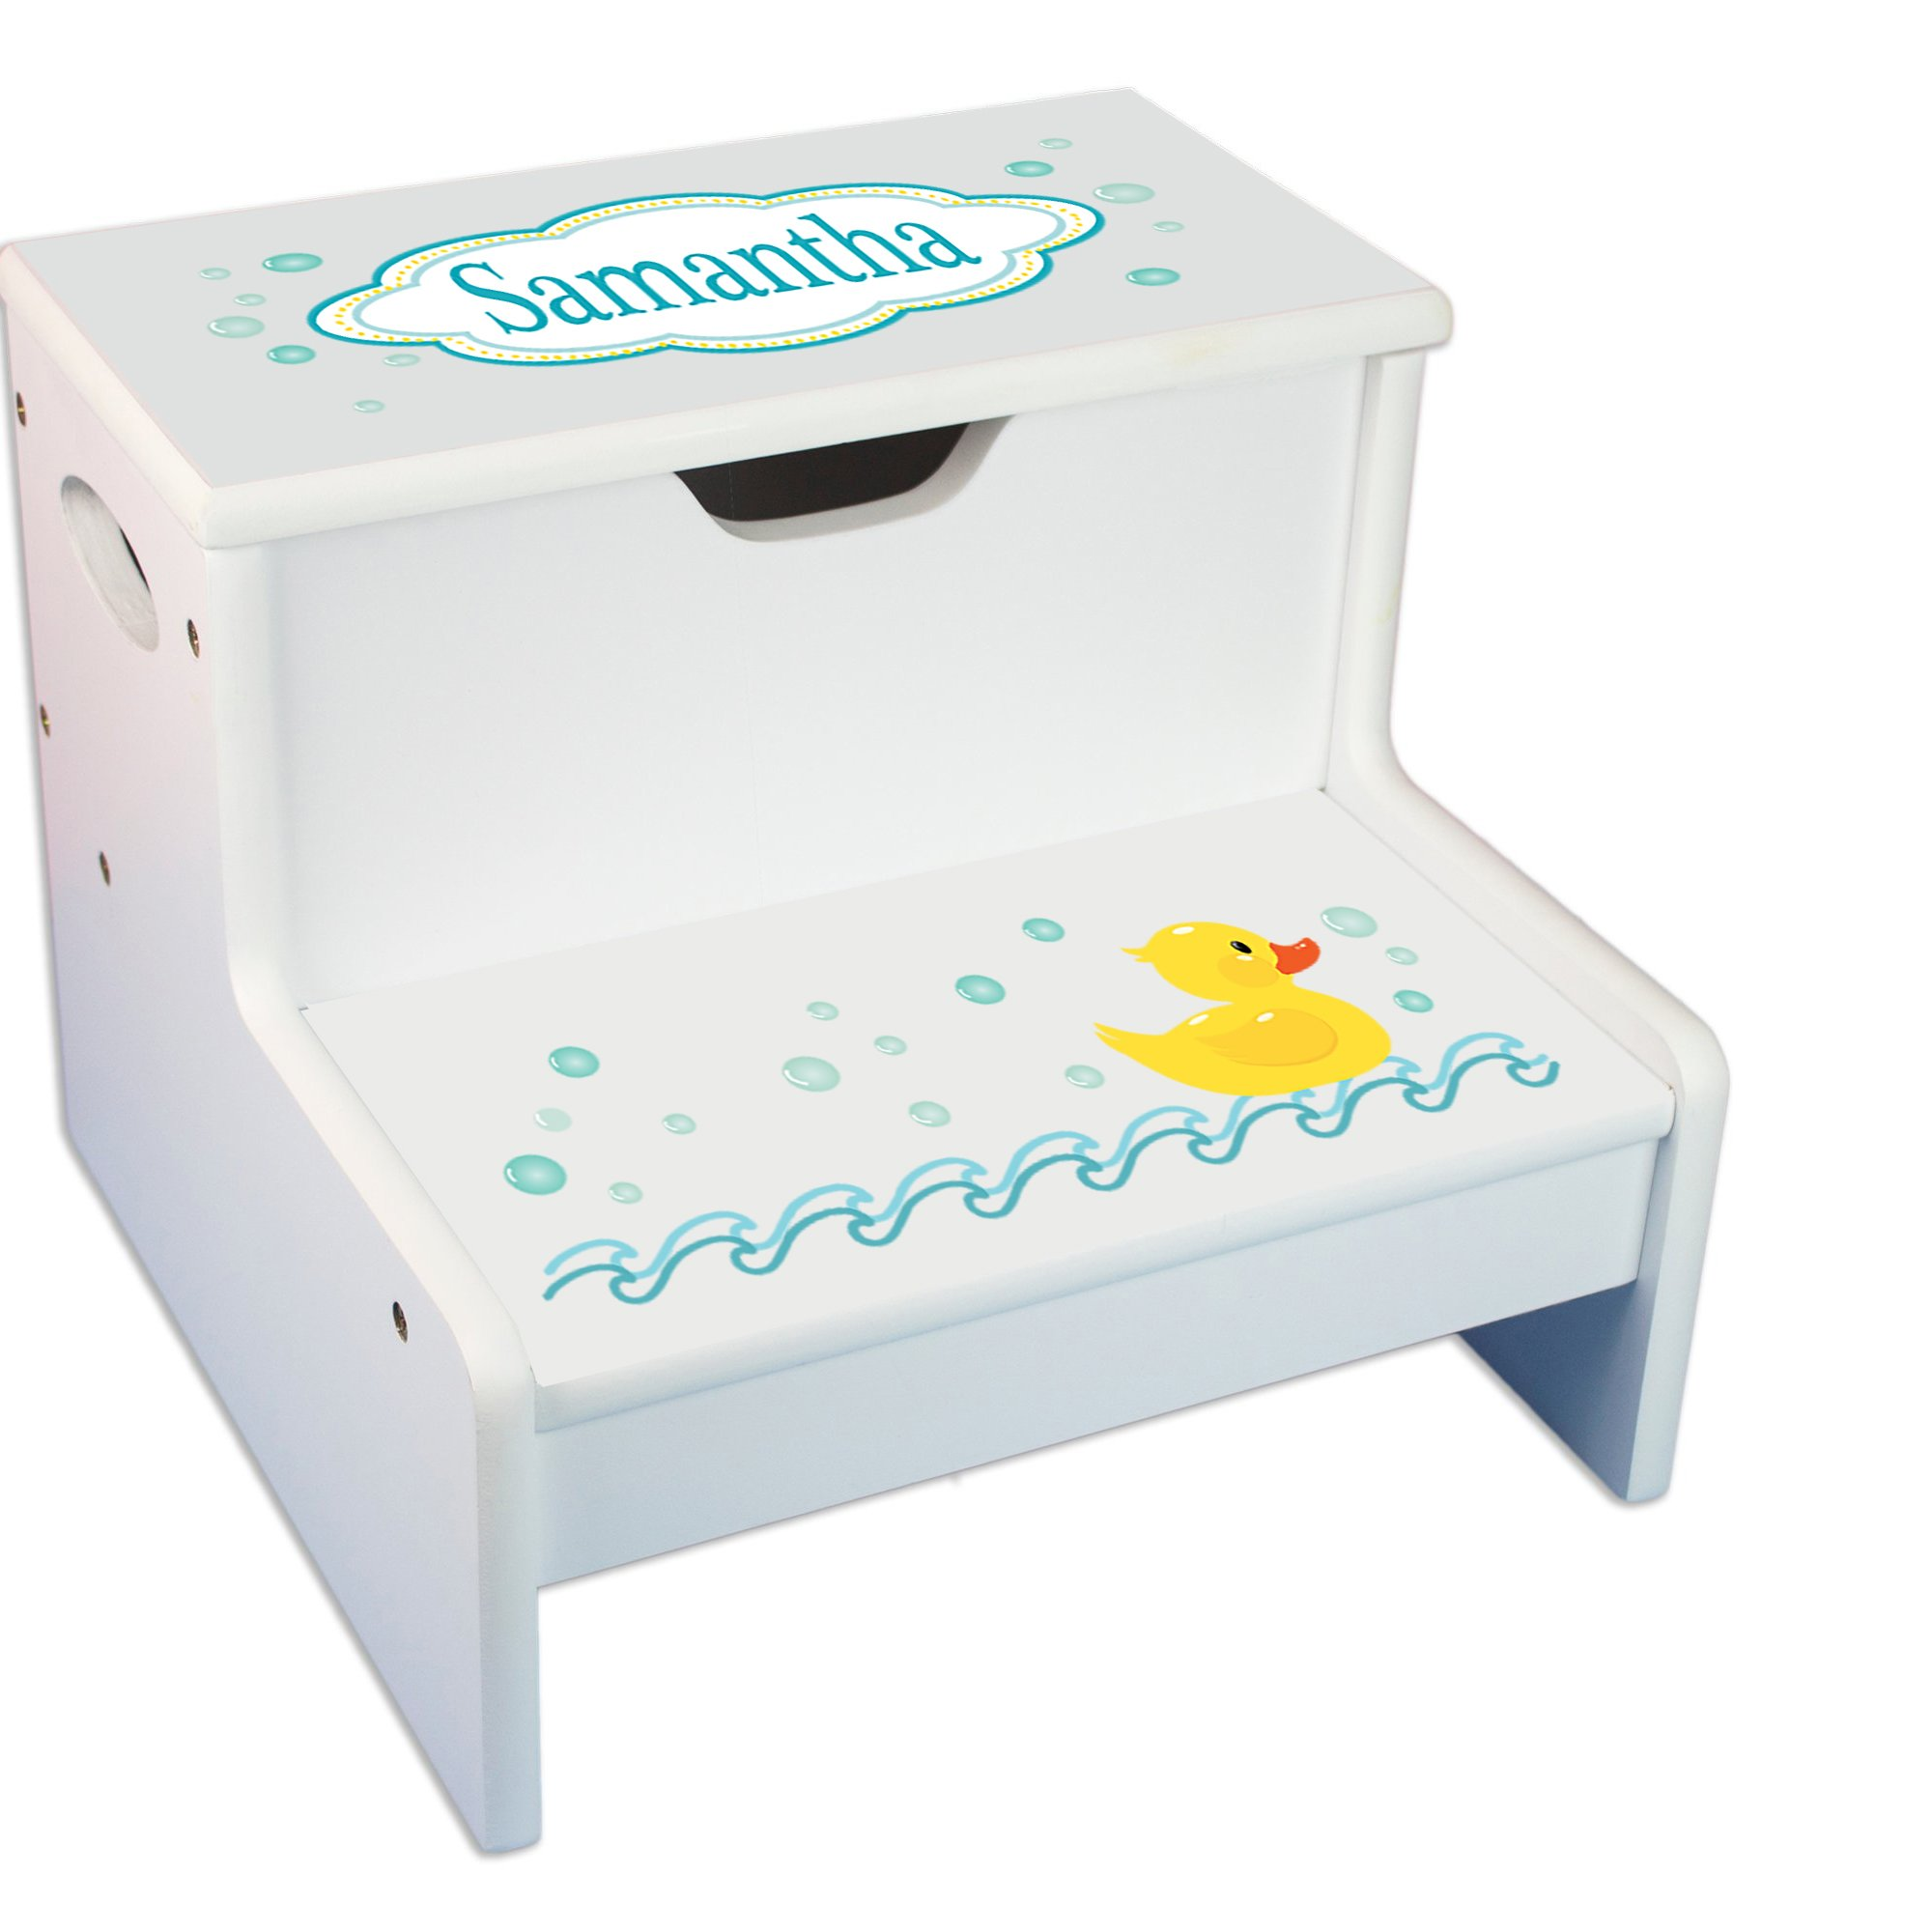 Personalized Rubber Ducky White Childrens Step Stool with Storage